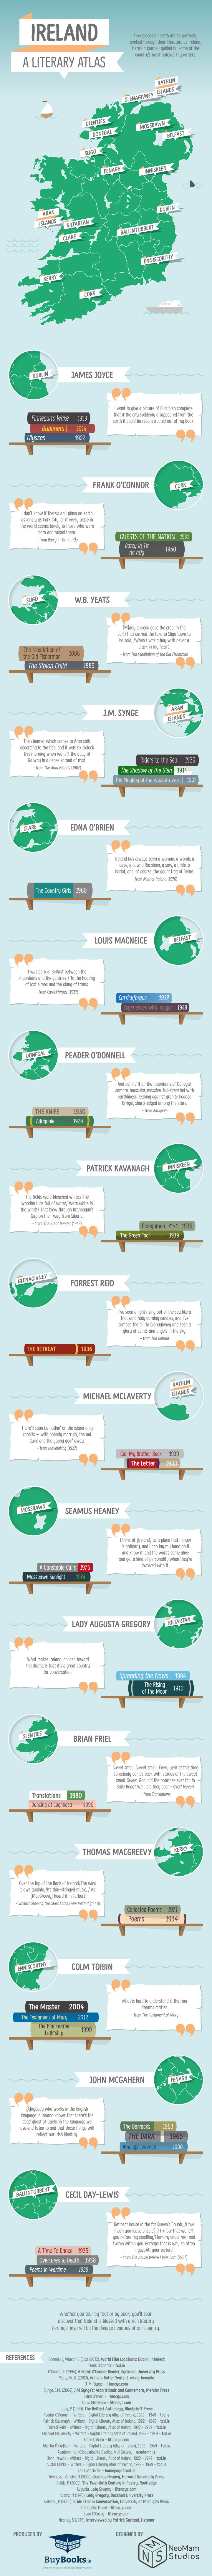 Infographic: Ireland A Literary Atlas #infographic